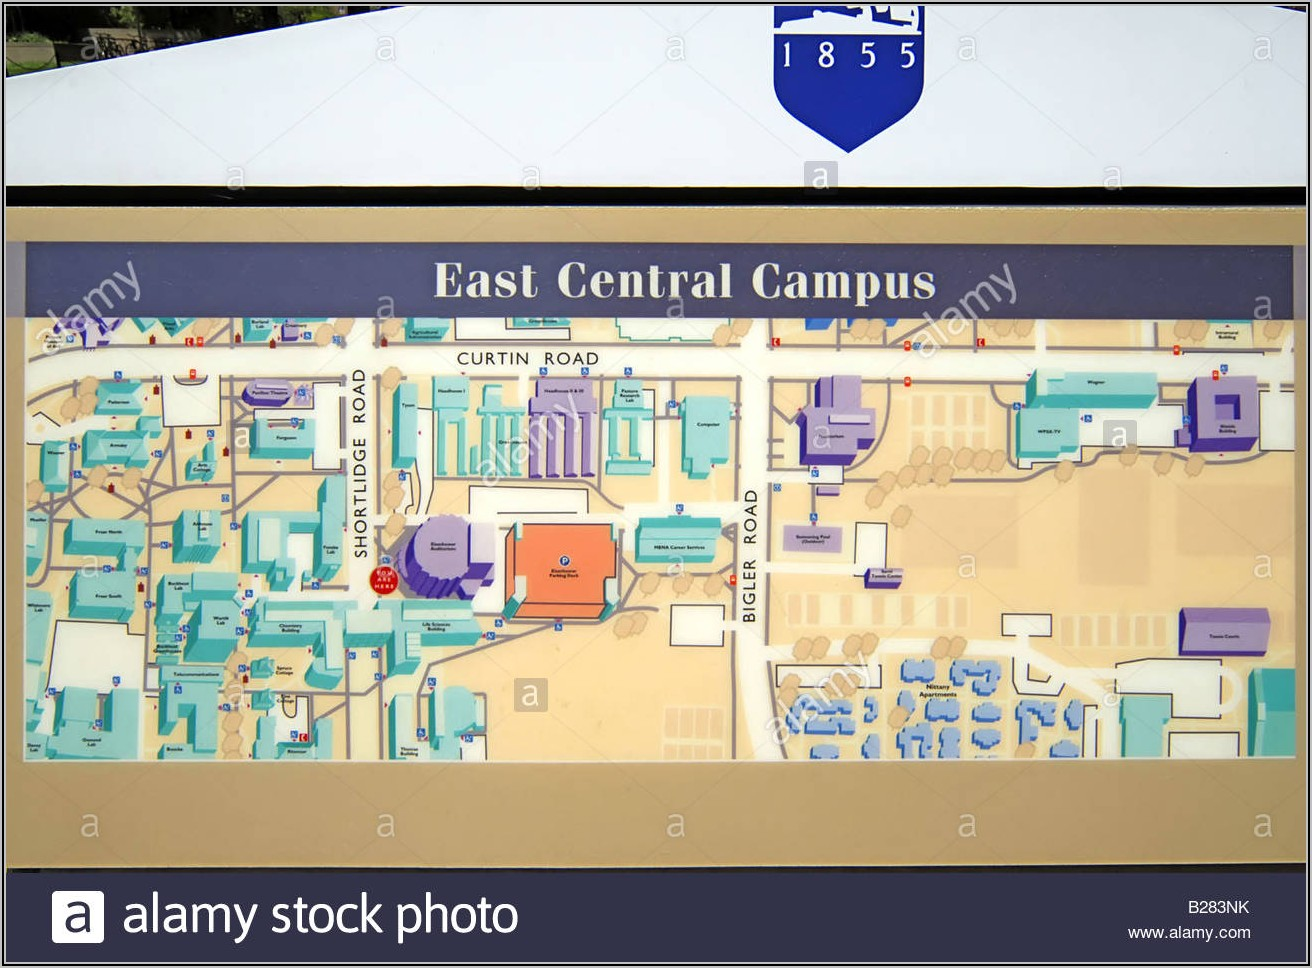 Penn State Campus Map 1980s